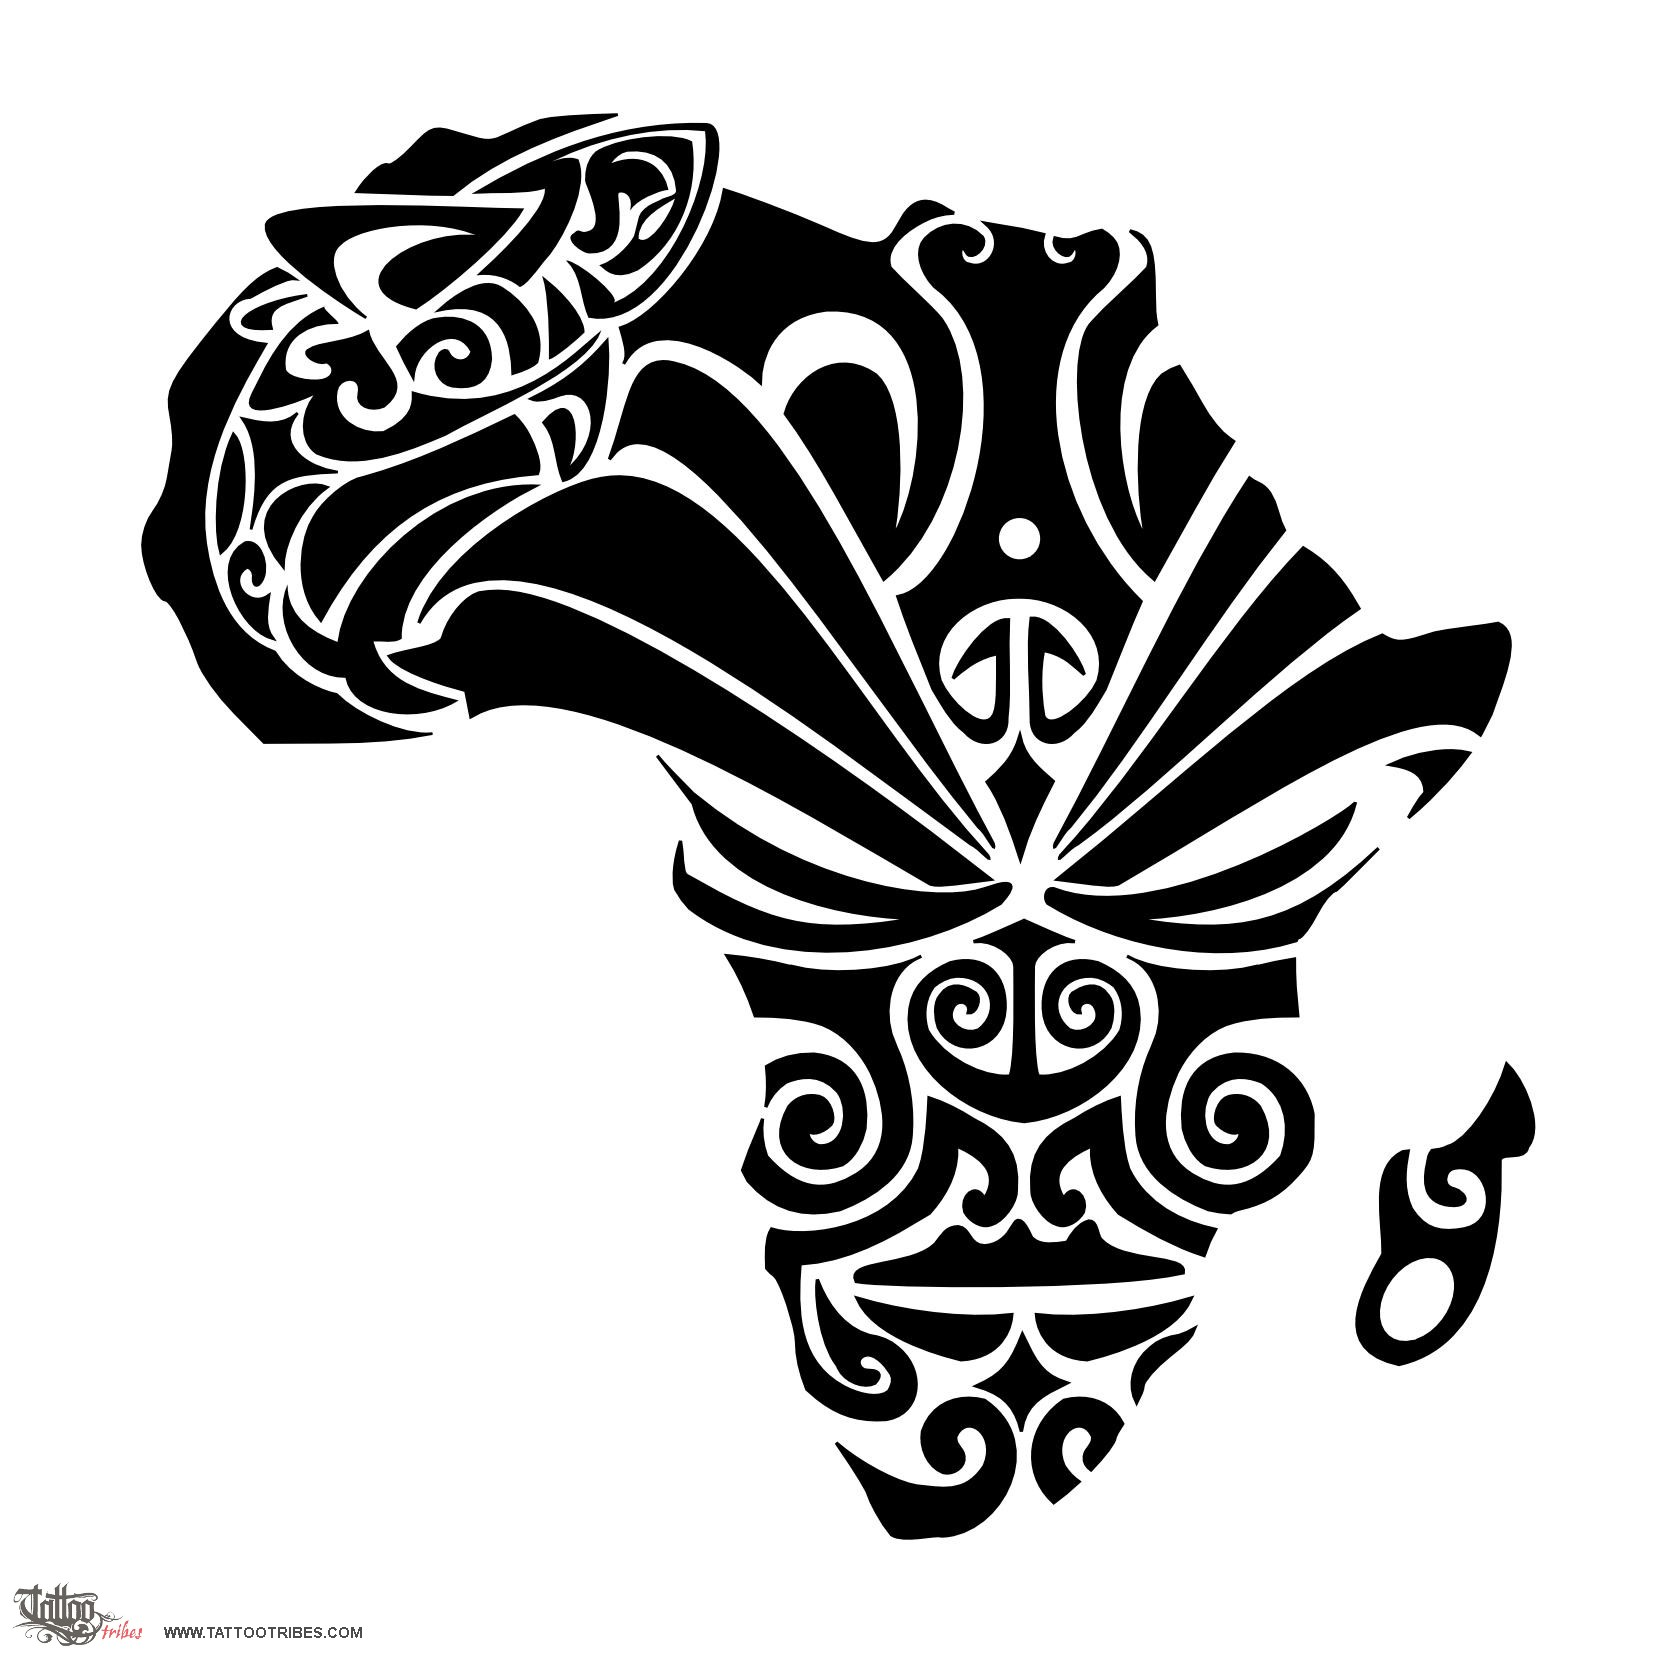 African Tattoos Designs: Tattoo Of African Dream, Courage, Dream Tattoo